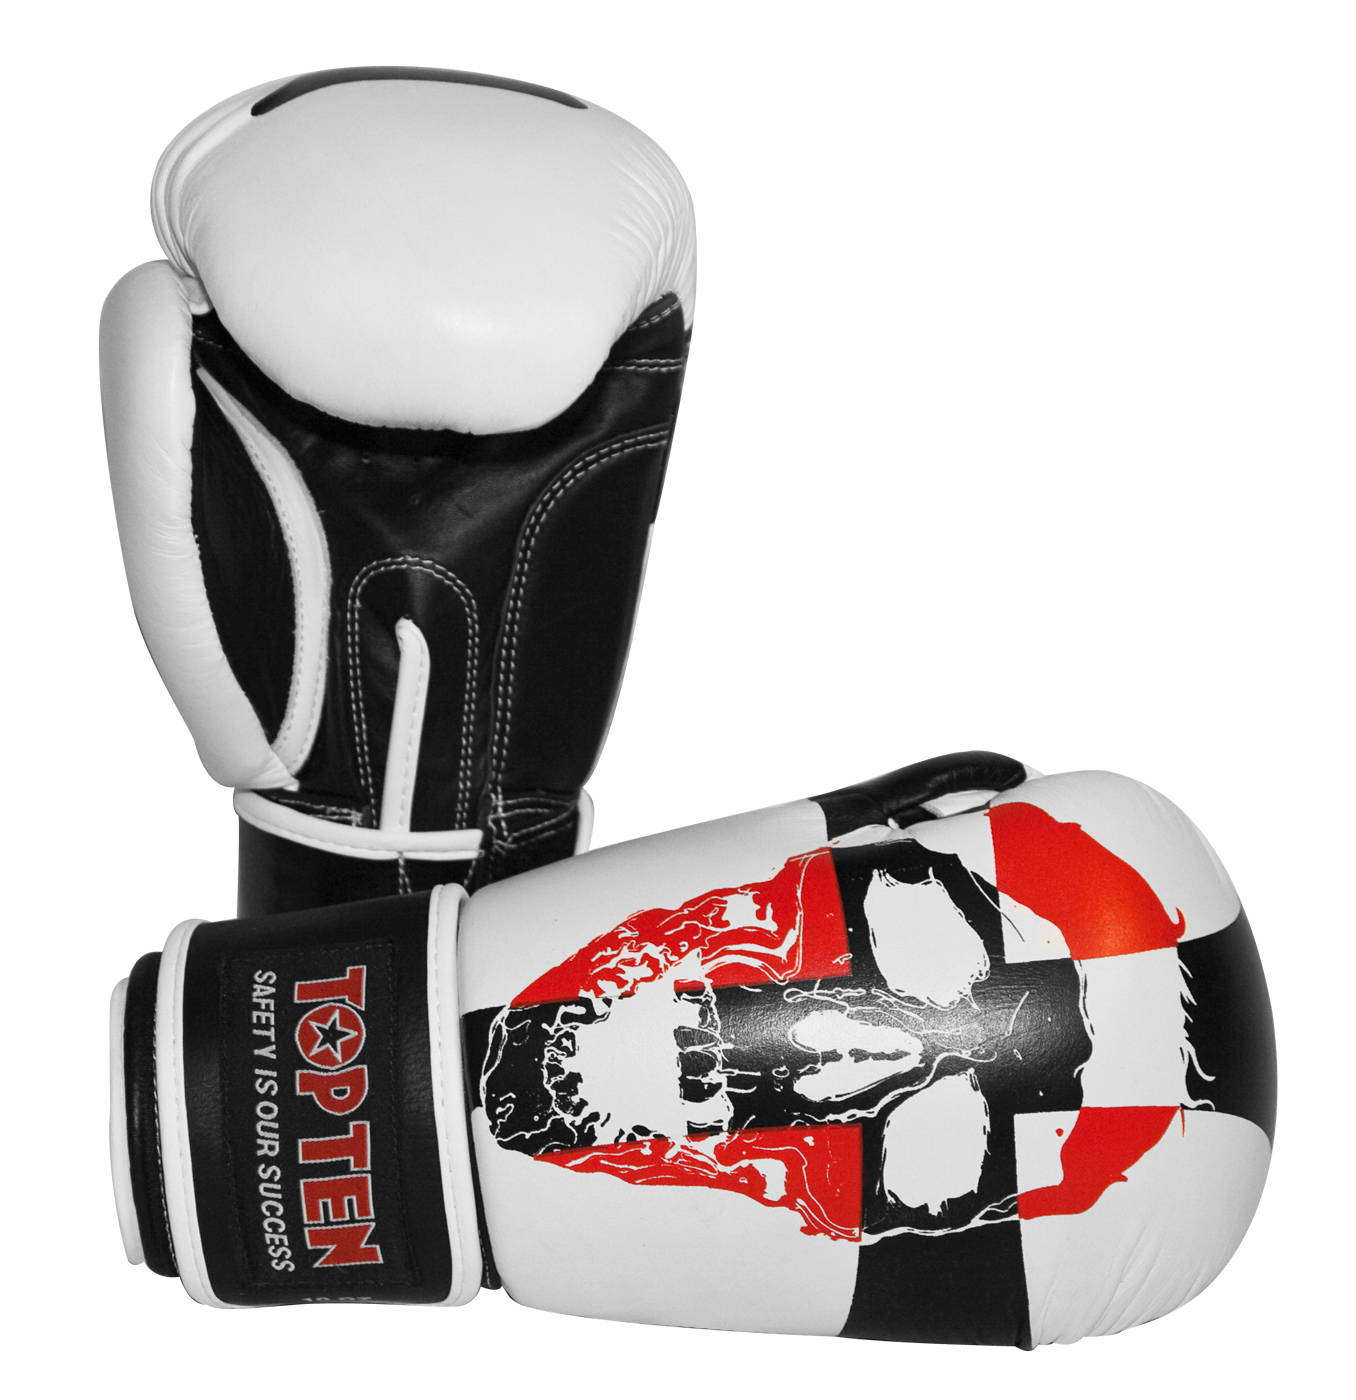 Shiv Naresh Teens Boxing Gloves 12oz: A Web Geek And The Art Of Boxing.: I Was Thinking Of Fancy